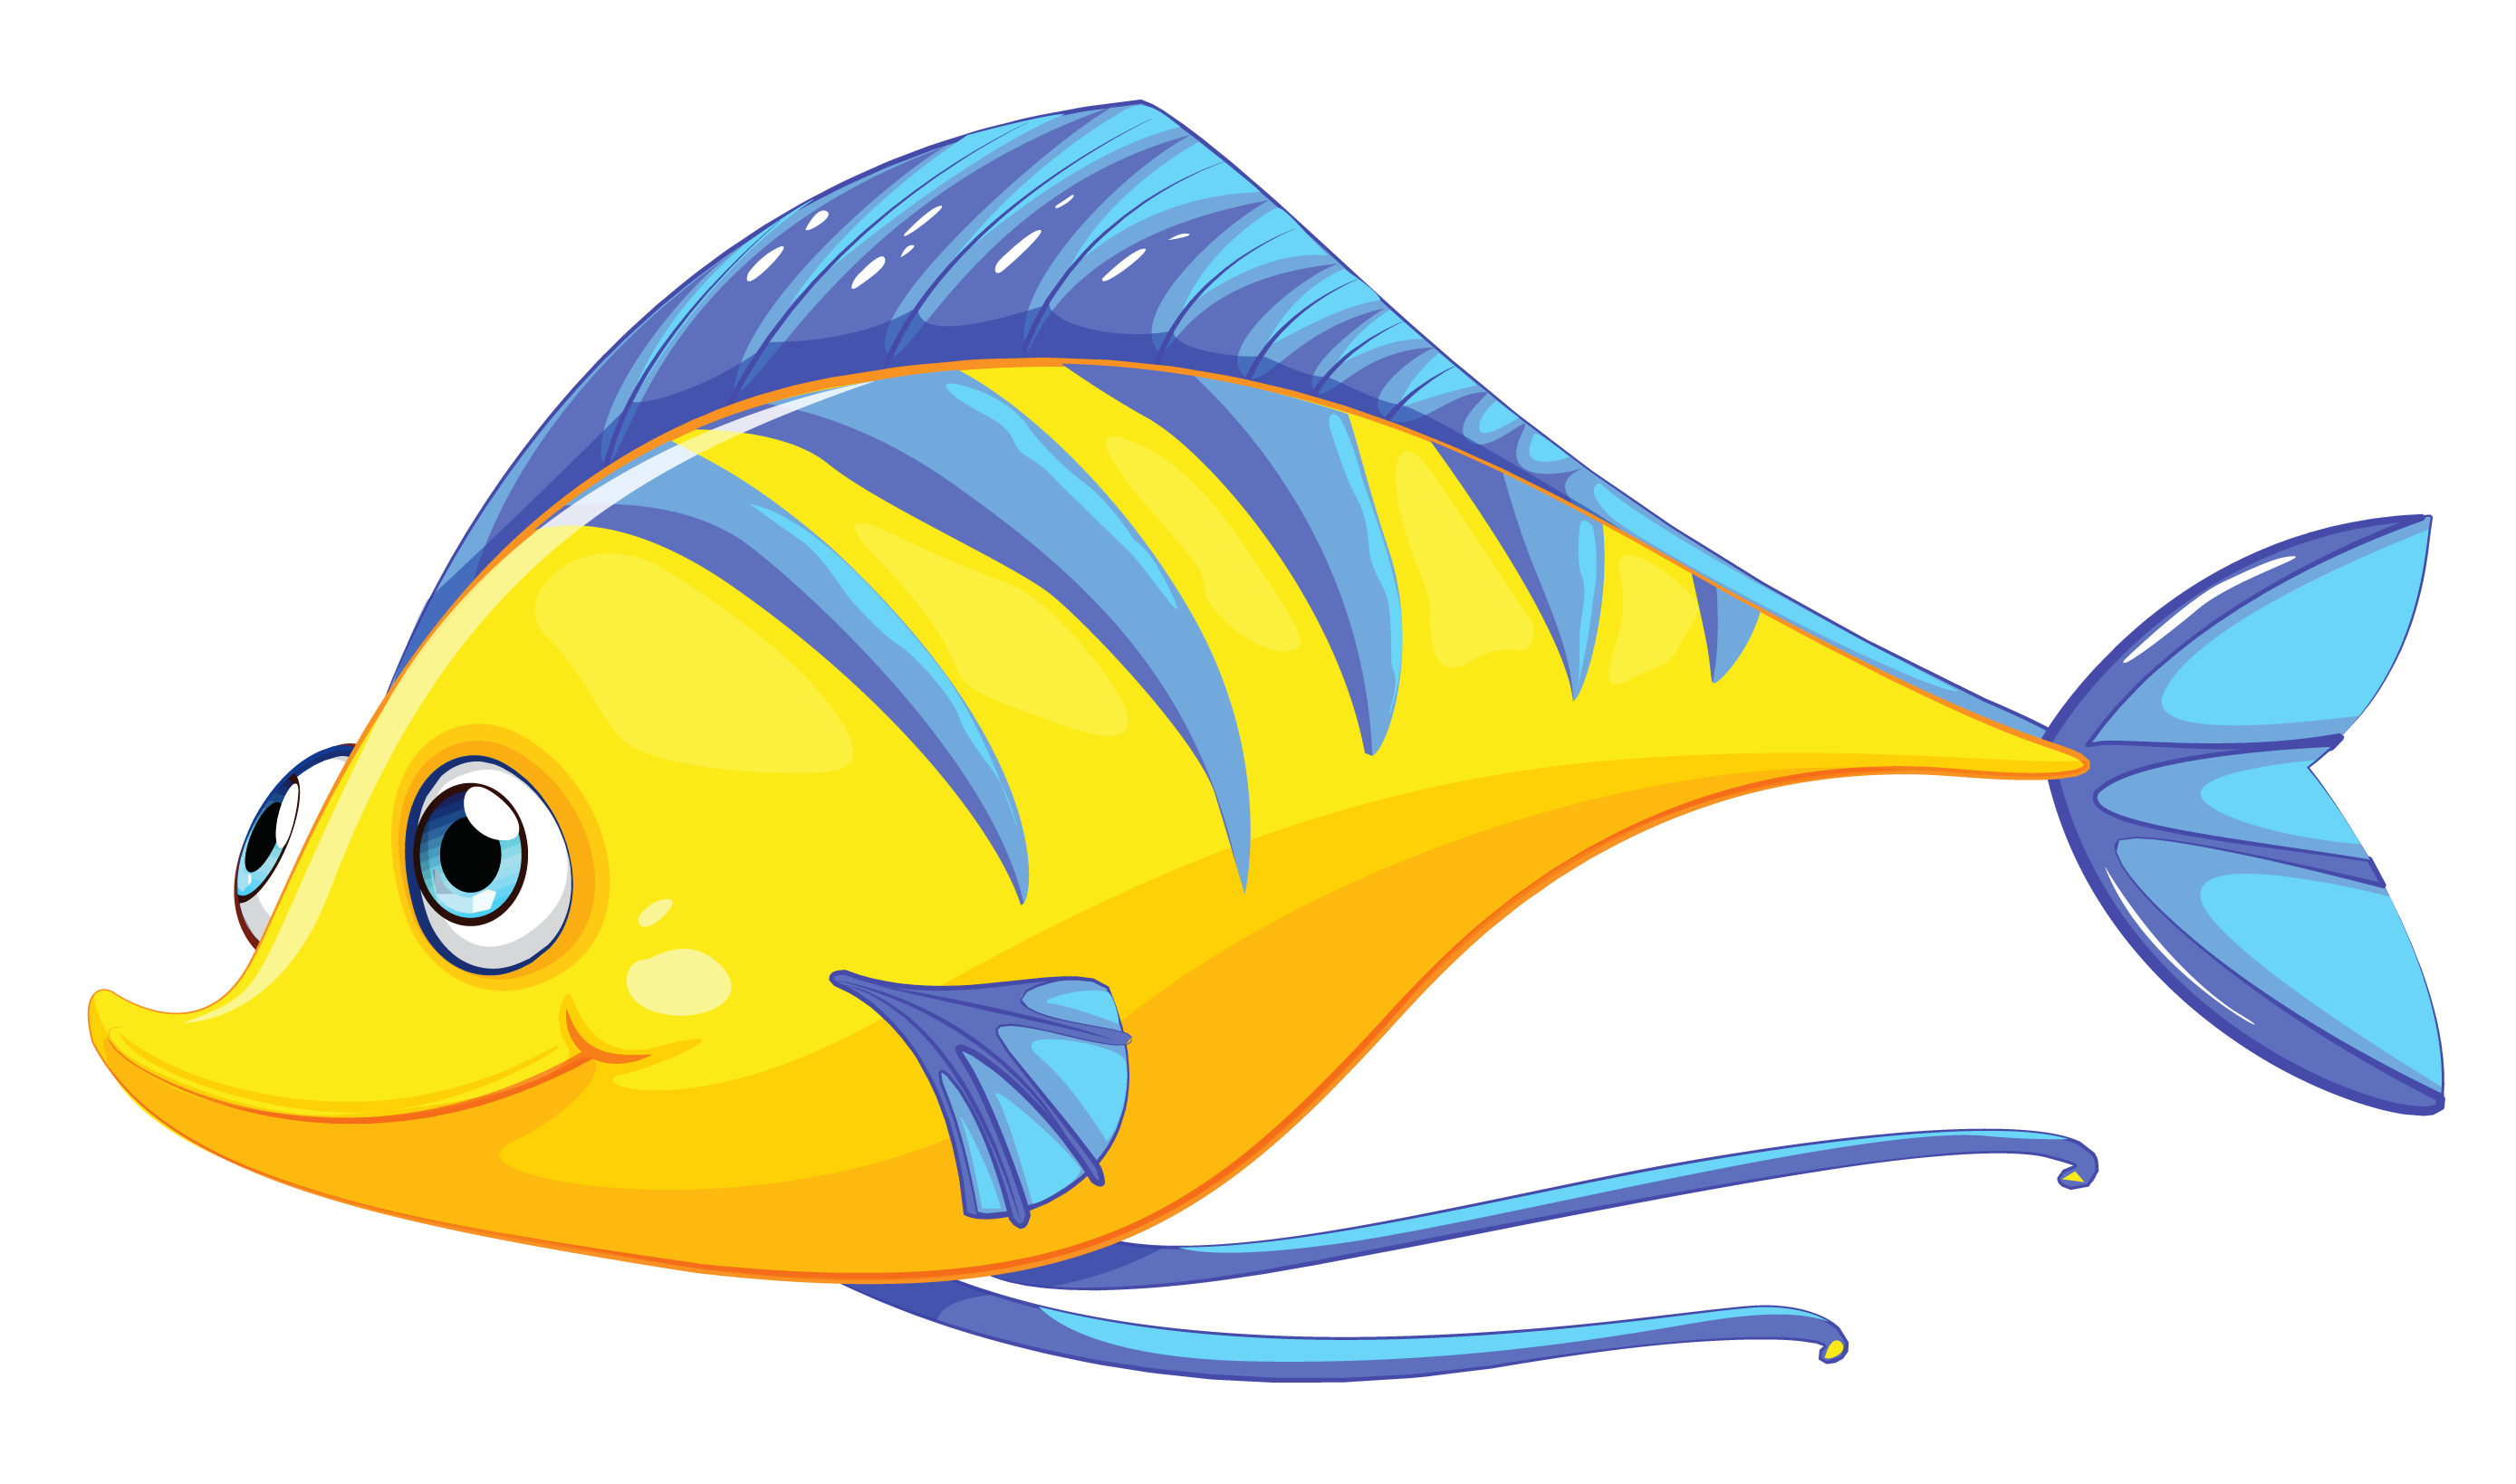 Disney angel fish dory clipart clipart black and white library 0_c0aa9_82fb4b43_orig 2.778×1.639 píxeles | SEA LIFE | Pinterest ... clipart black and white library